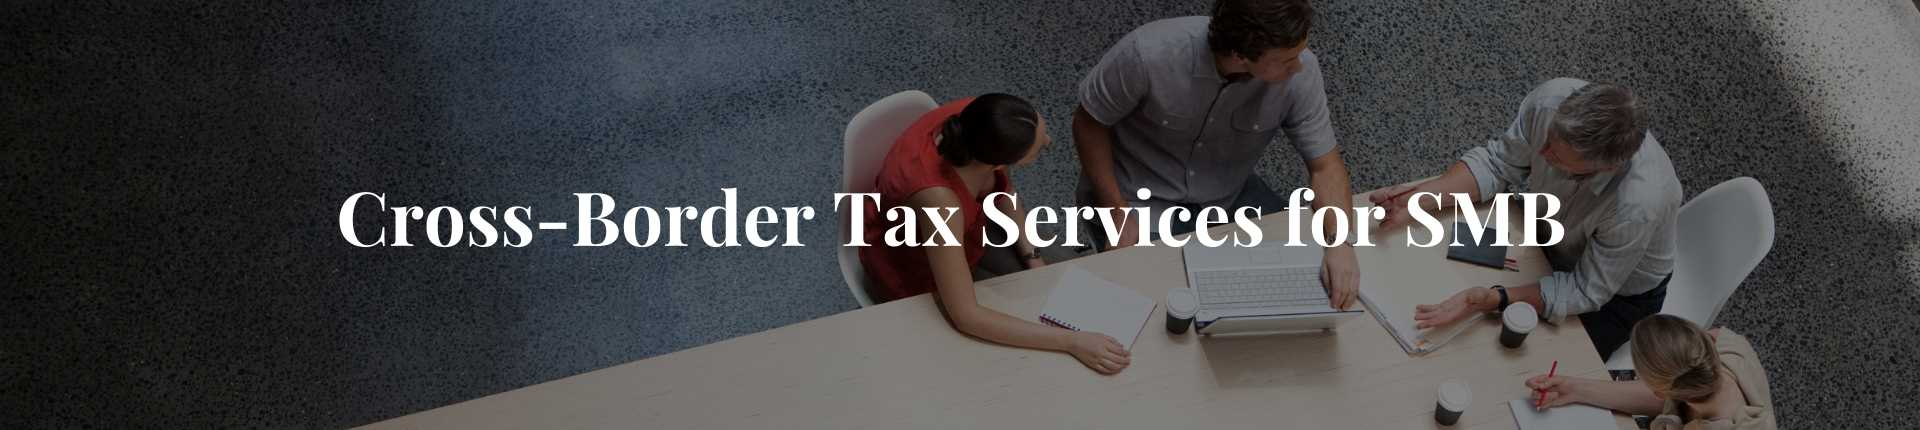 Cross-Border Tax Services Small Medium Size Businesses in GTA